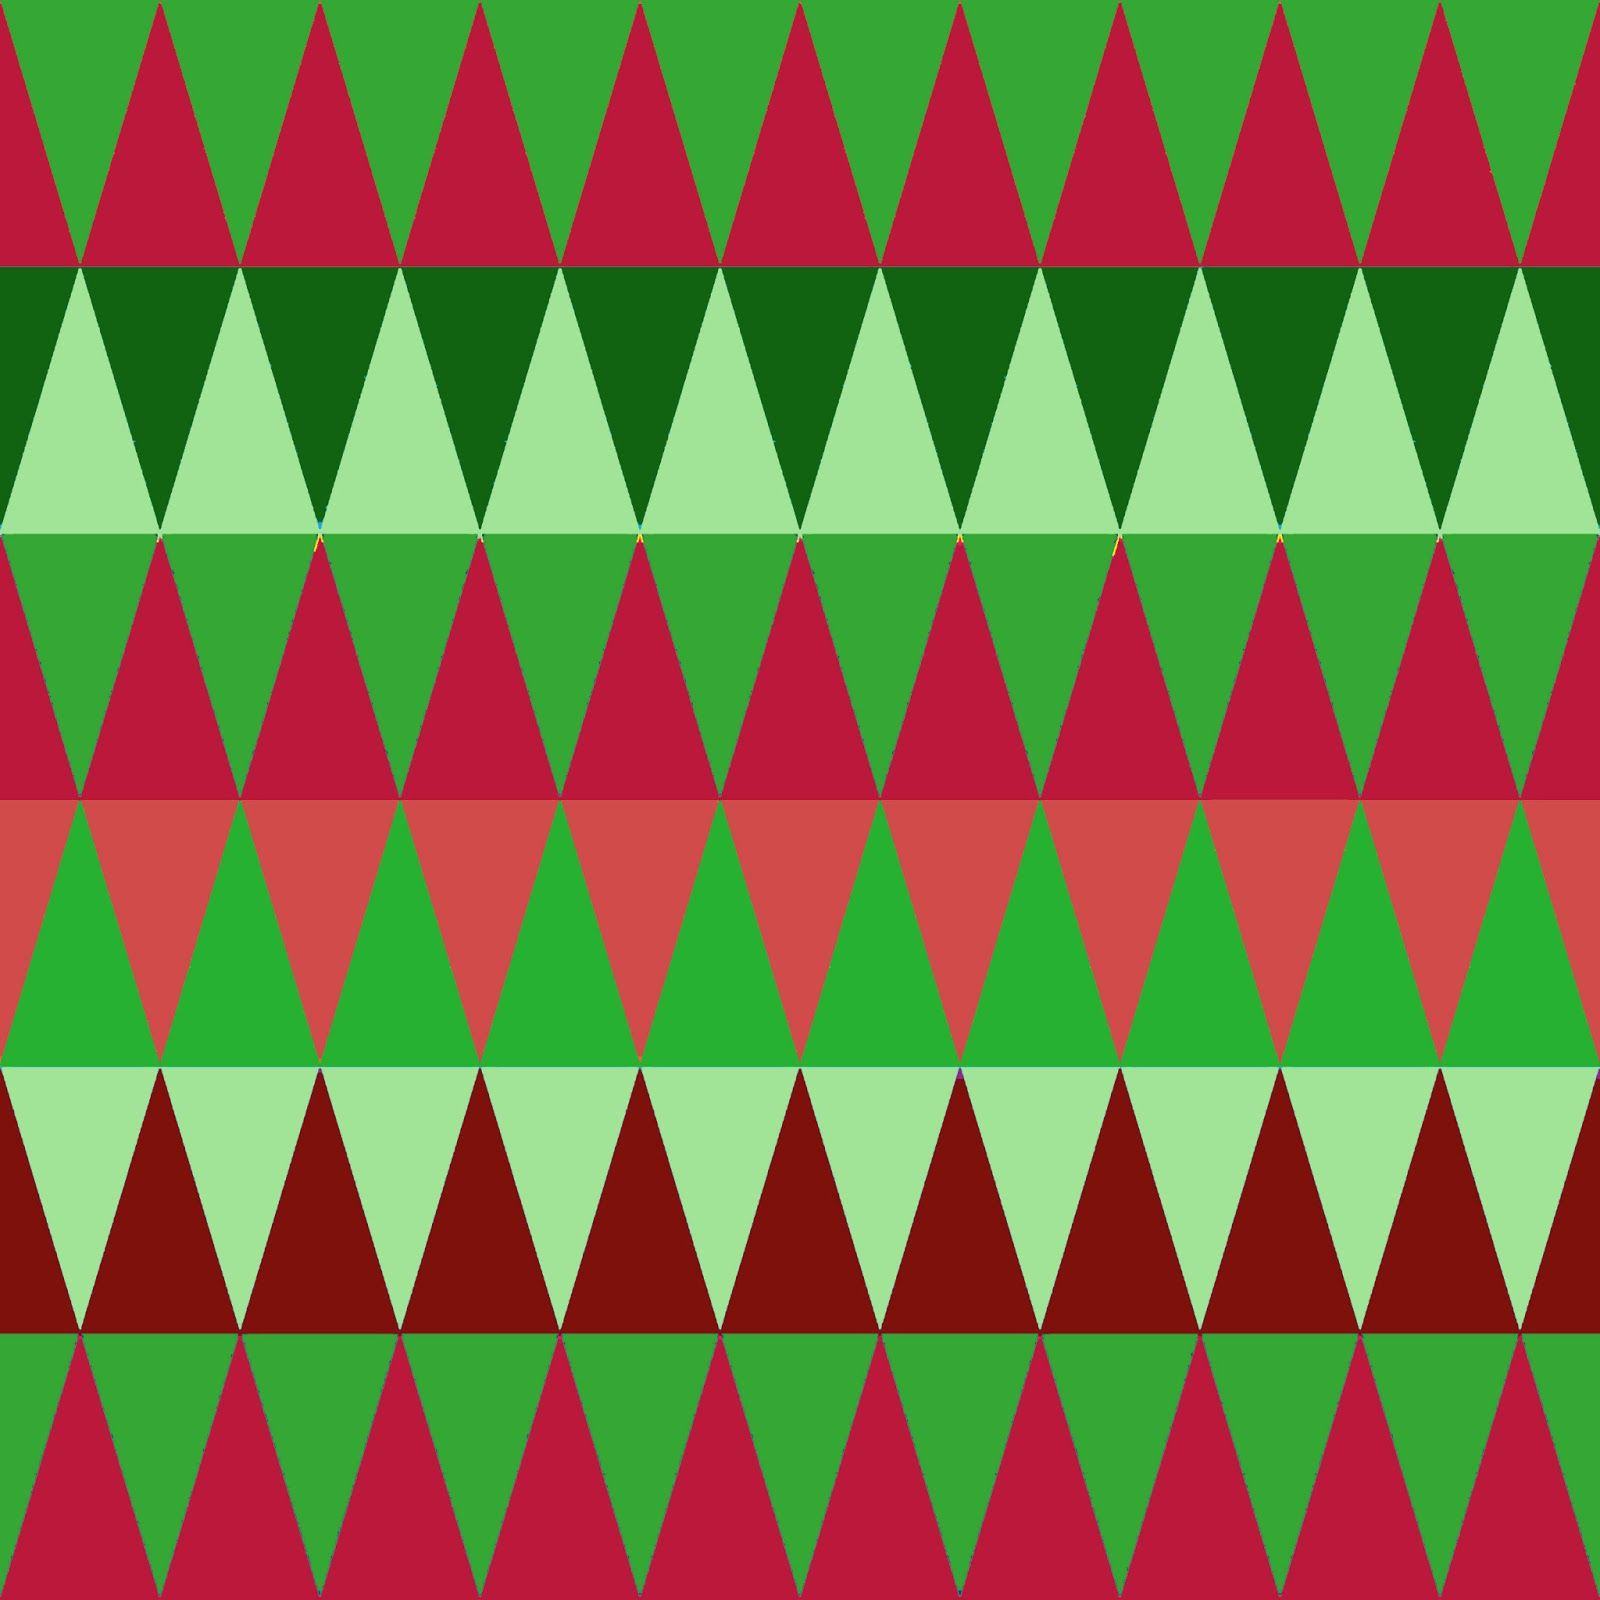 Christmas In July Background Images.Christmas In July Freebies Holiday Christmas Papers